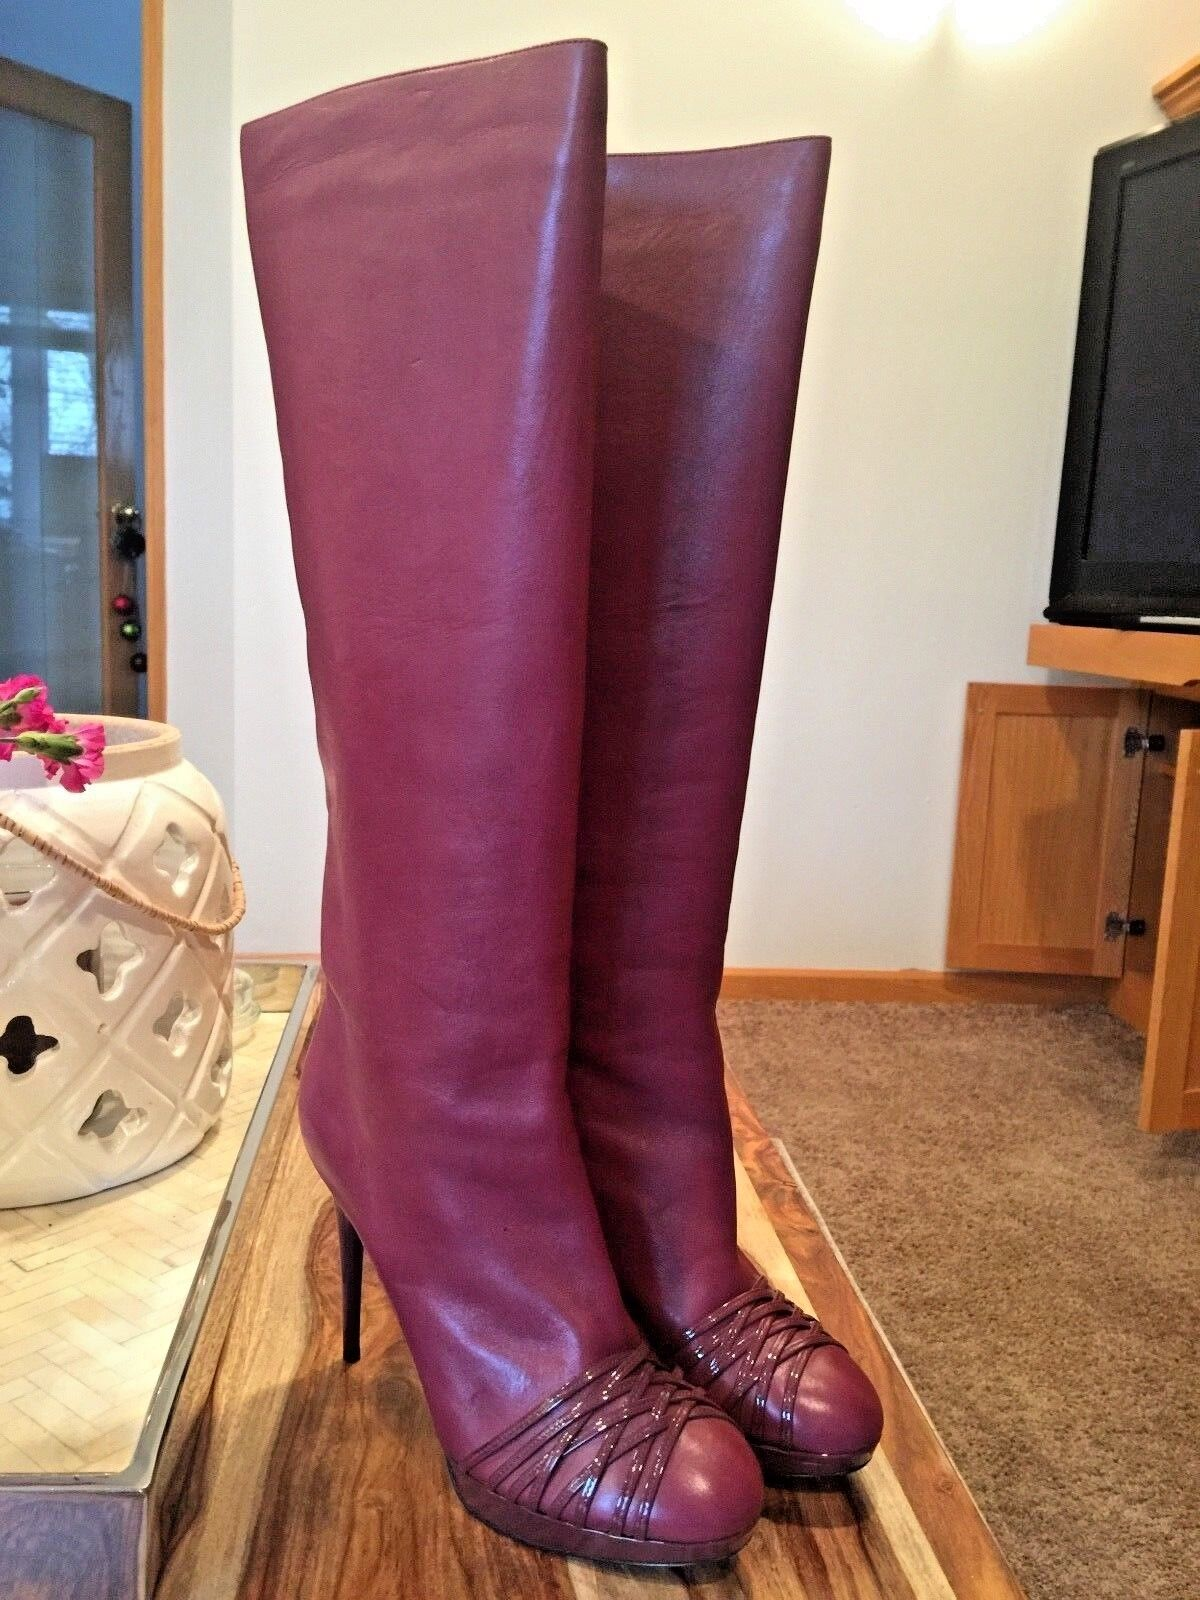 Authentic Dior Burgundy Knee-High Heels Heels Heels Boots 38.5 7d80b9